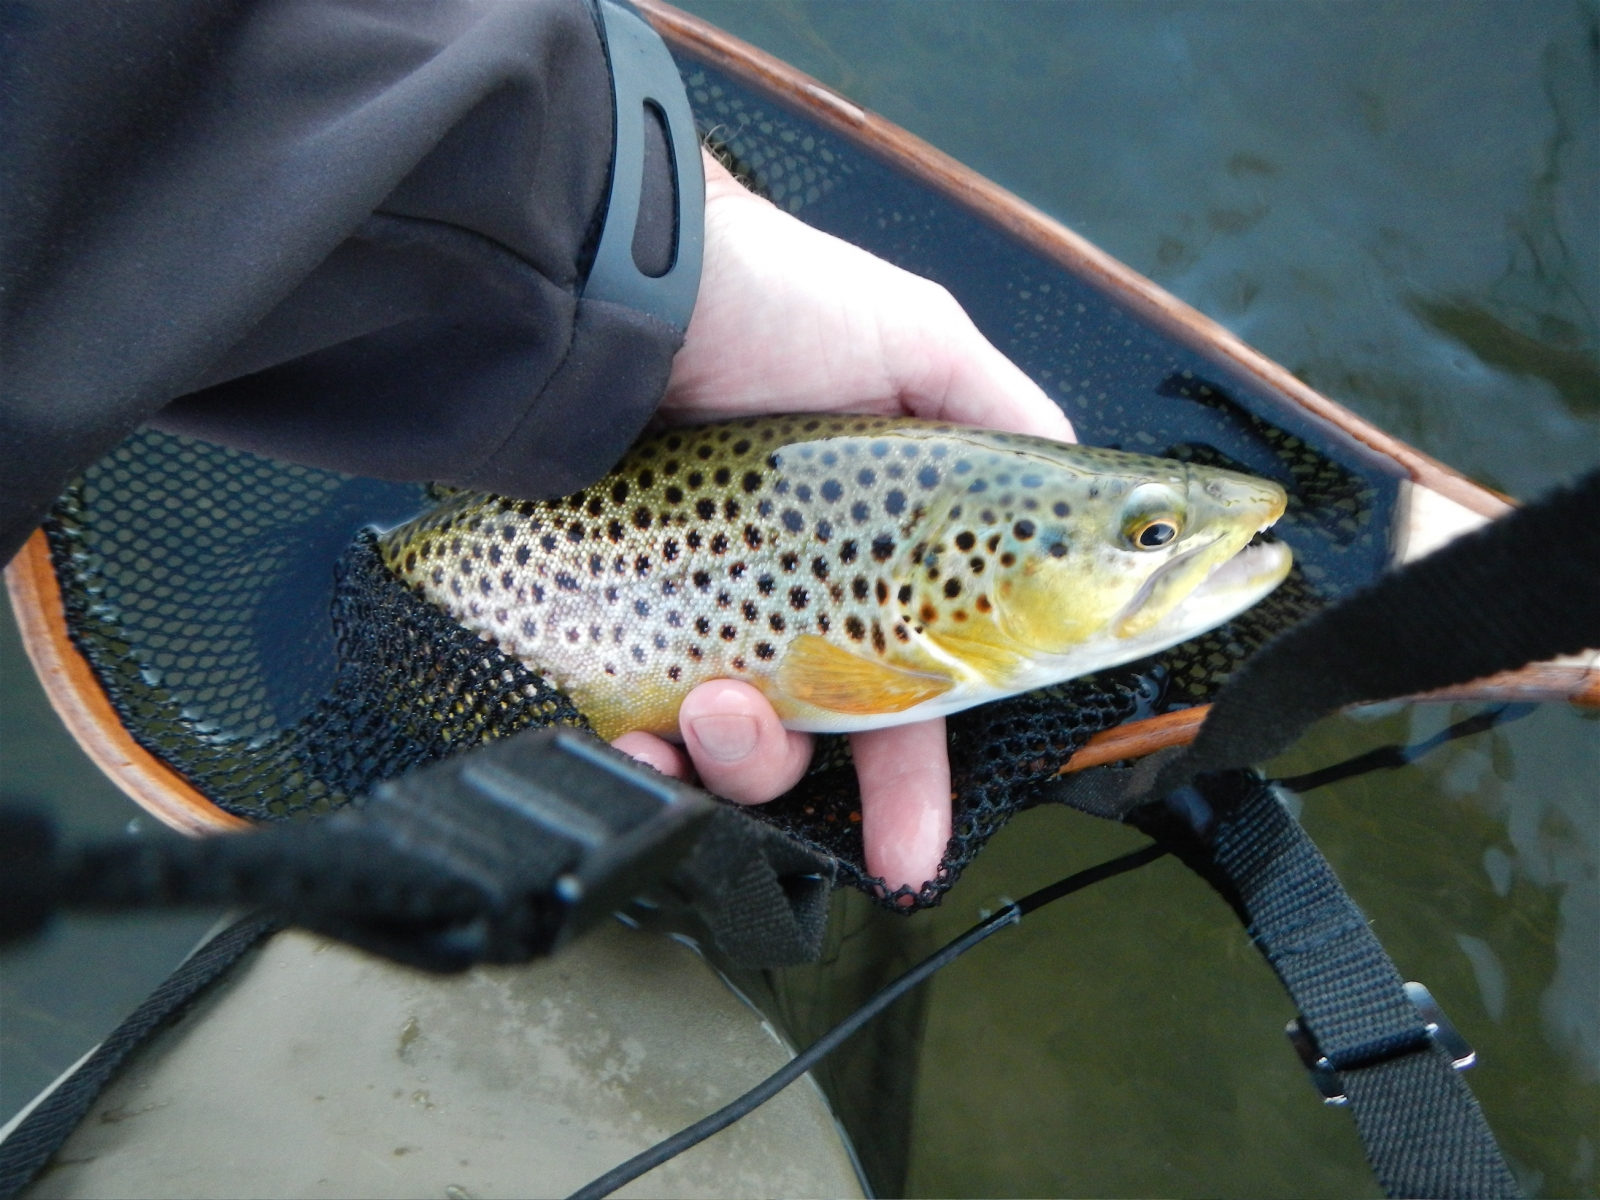 A feisty brown trout that couldn't resist one last brown drake before the hatch ended for another year.